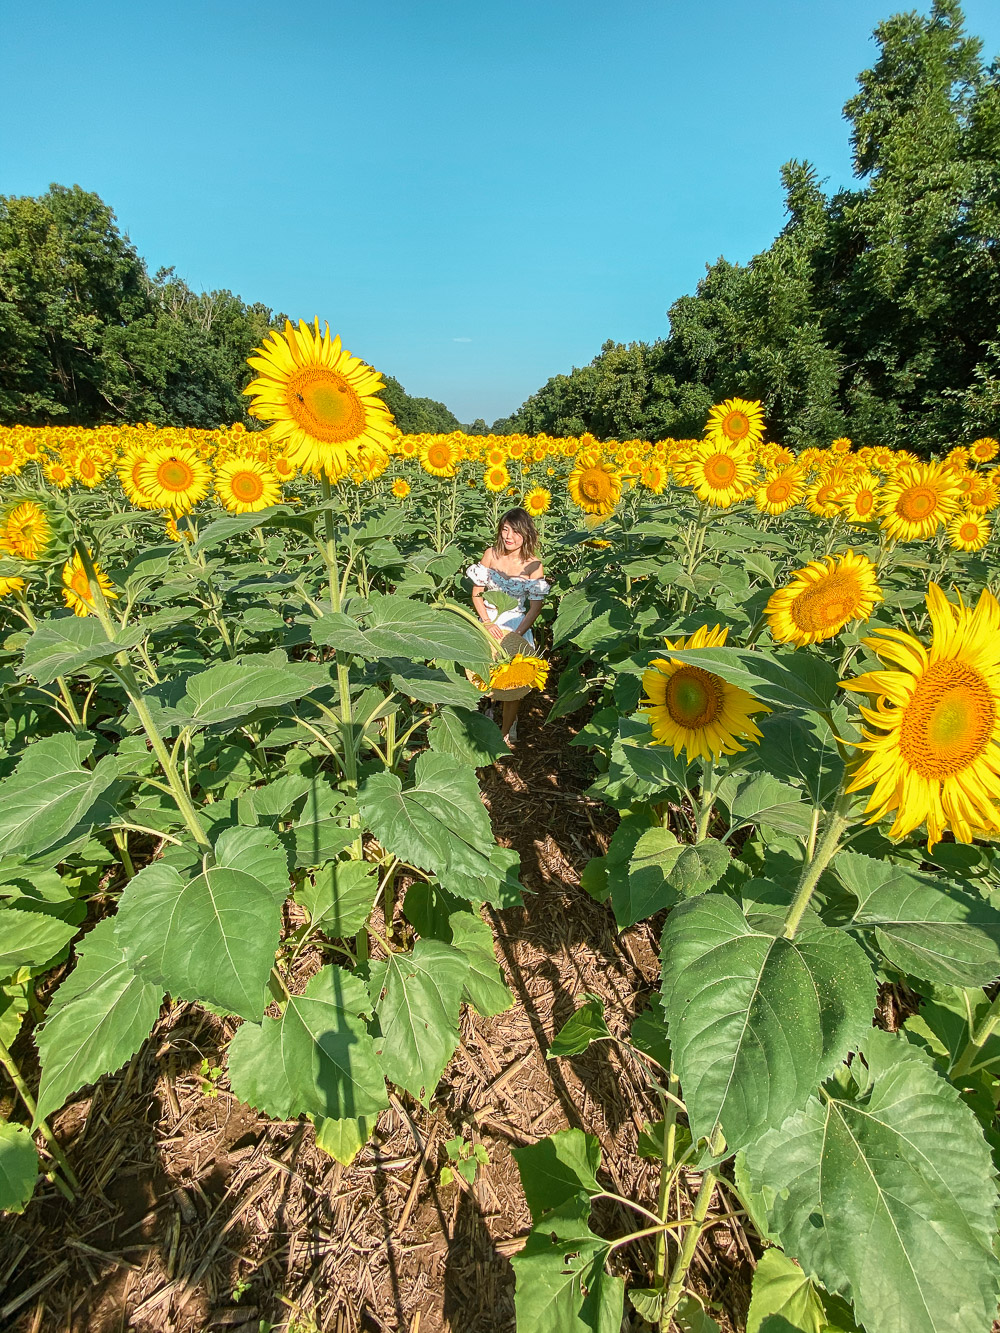 mckee beshers sunflowers field 4